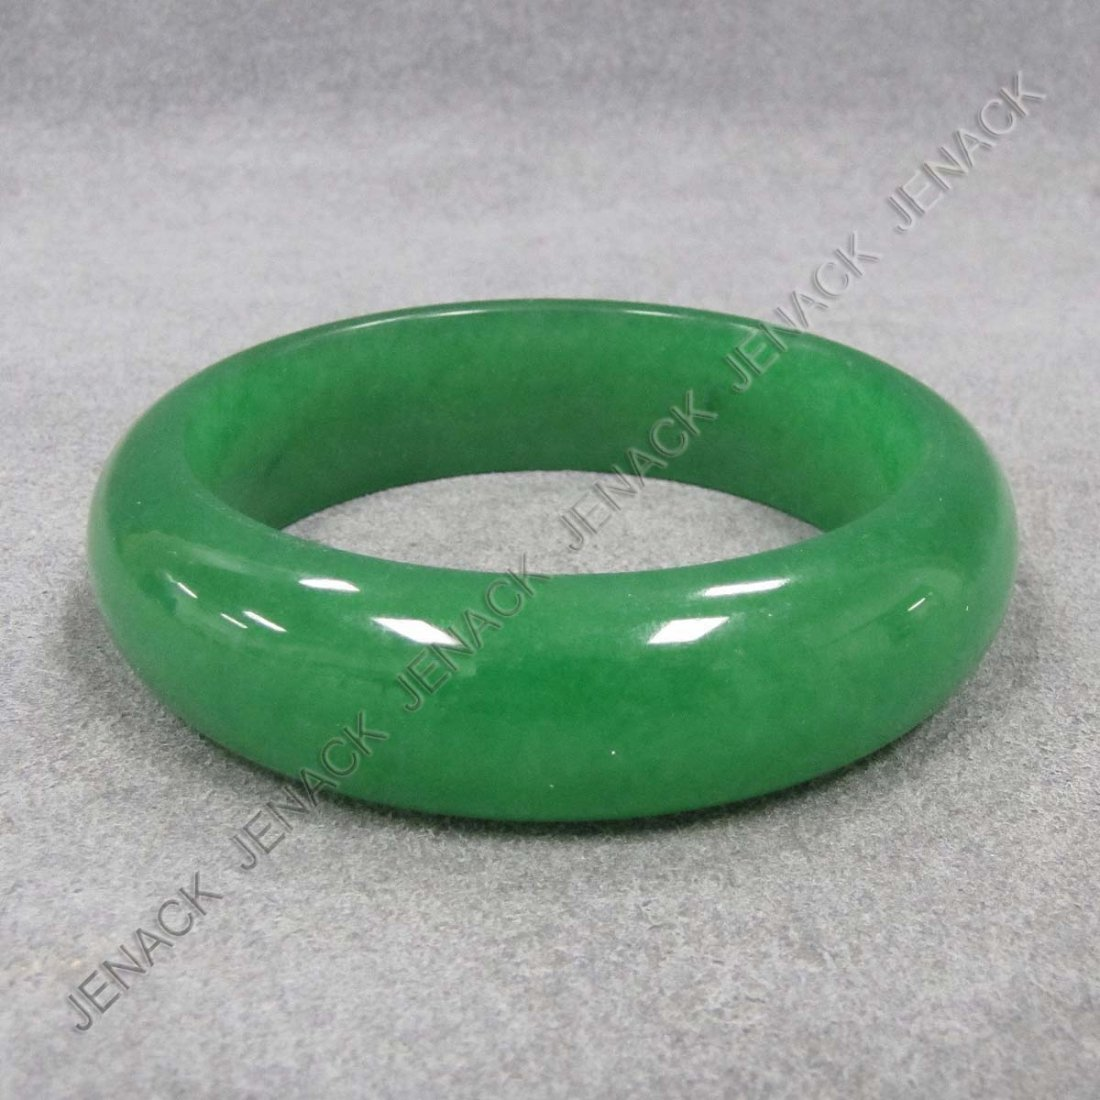 8: FINE CHINESE CARVED JADE BANGLE